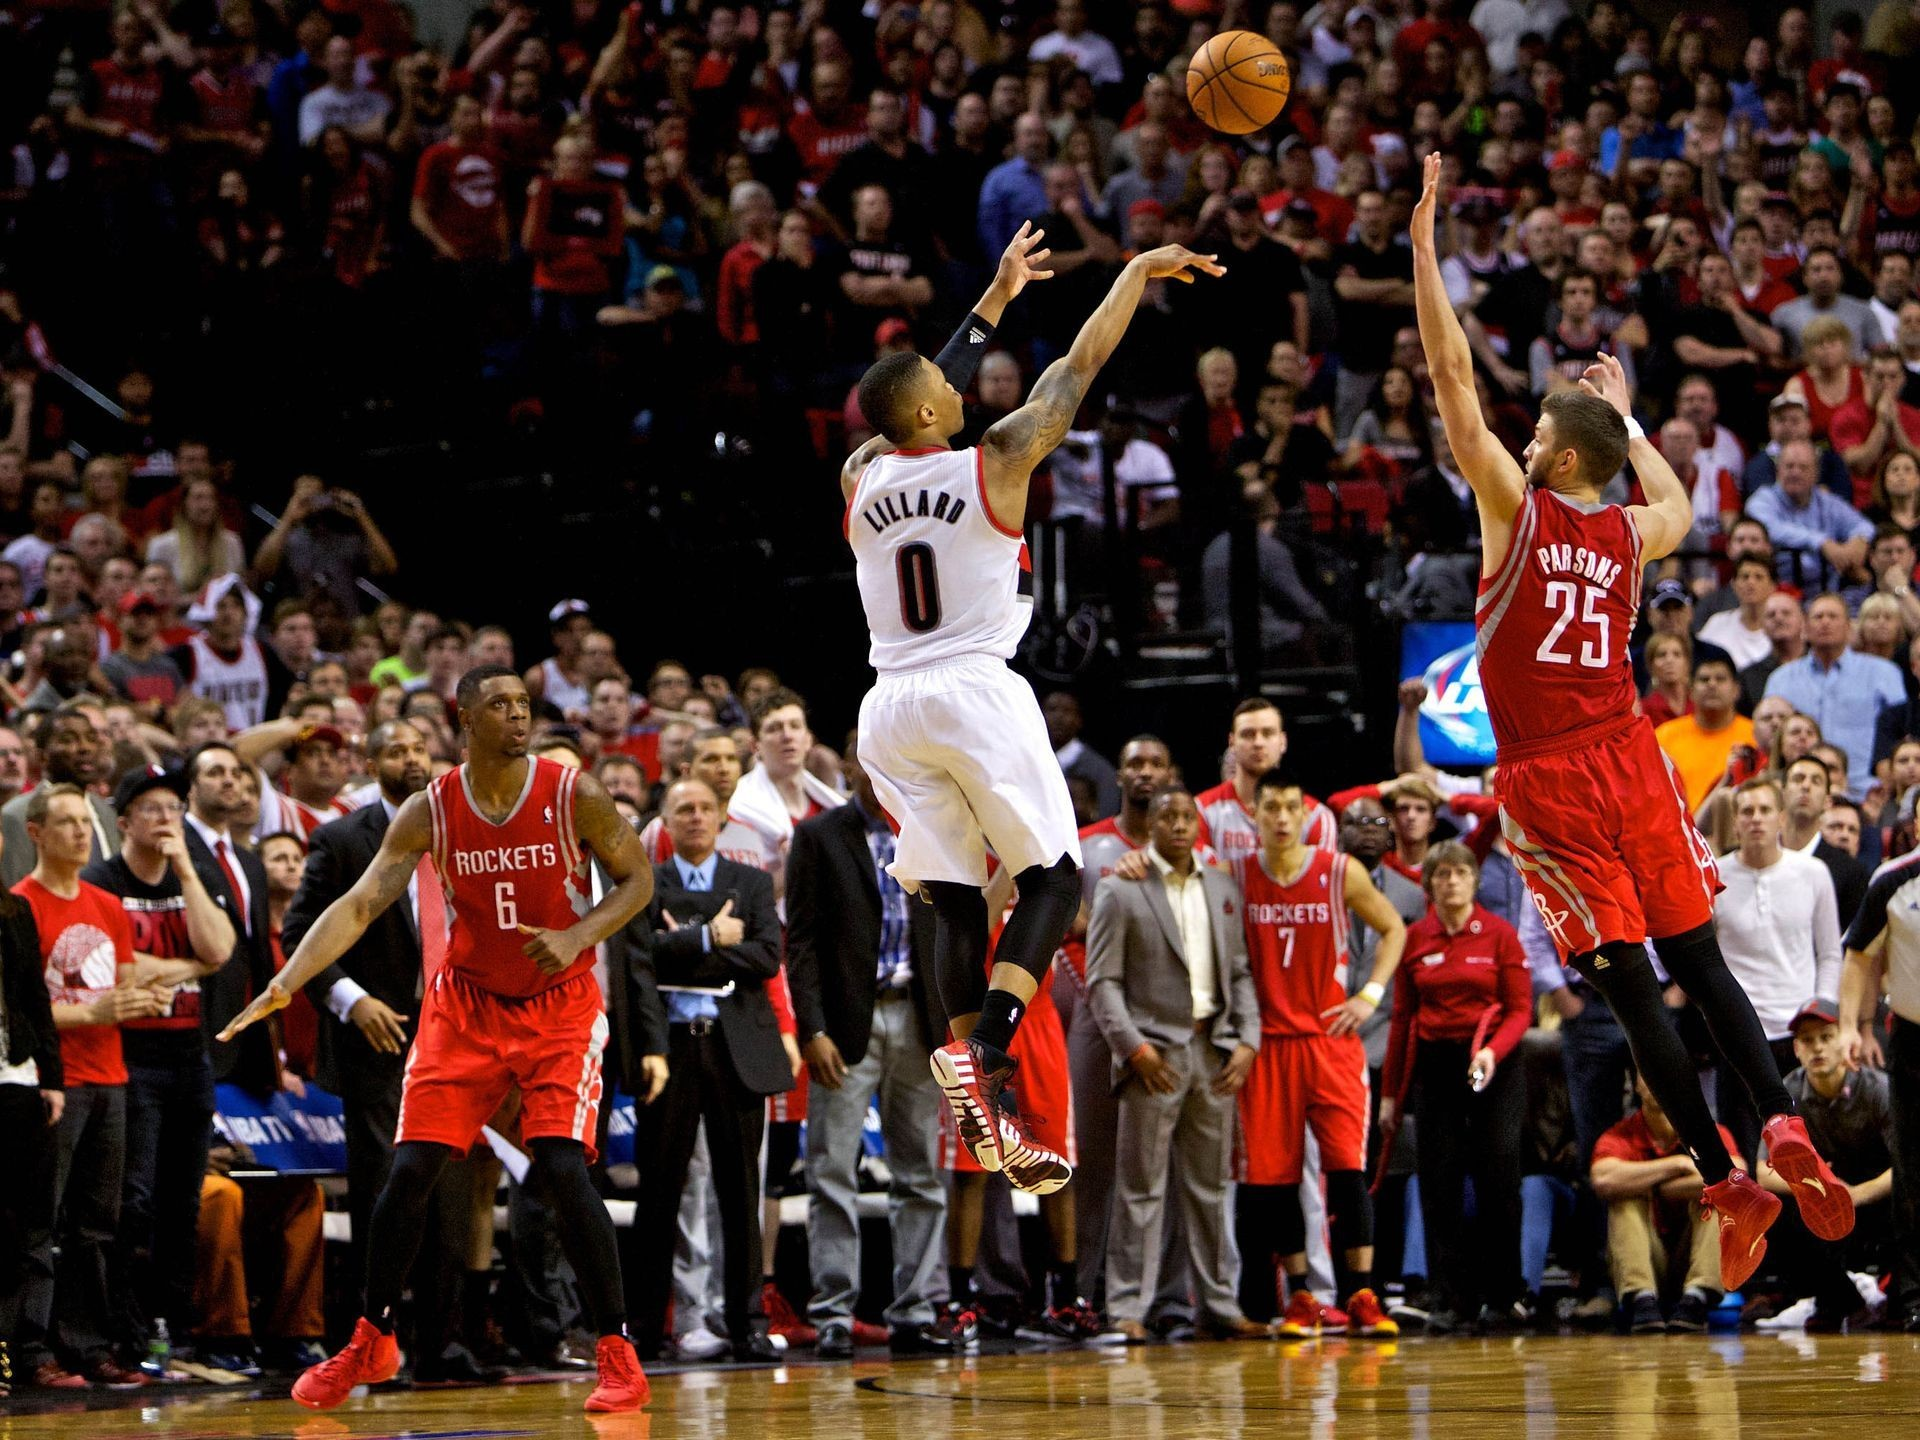 Res: 1920x1440, Damian Lillard, Game 6 of the 2014 Western conference opening round: Lillard  hit the game-winning three-pointer over the outstretched hands of Chandler  ...